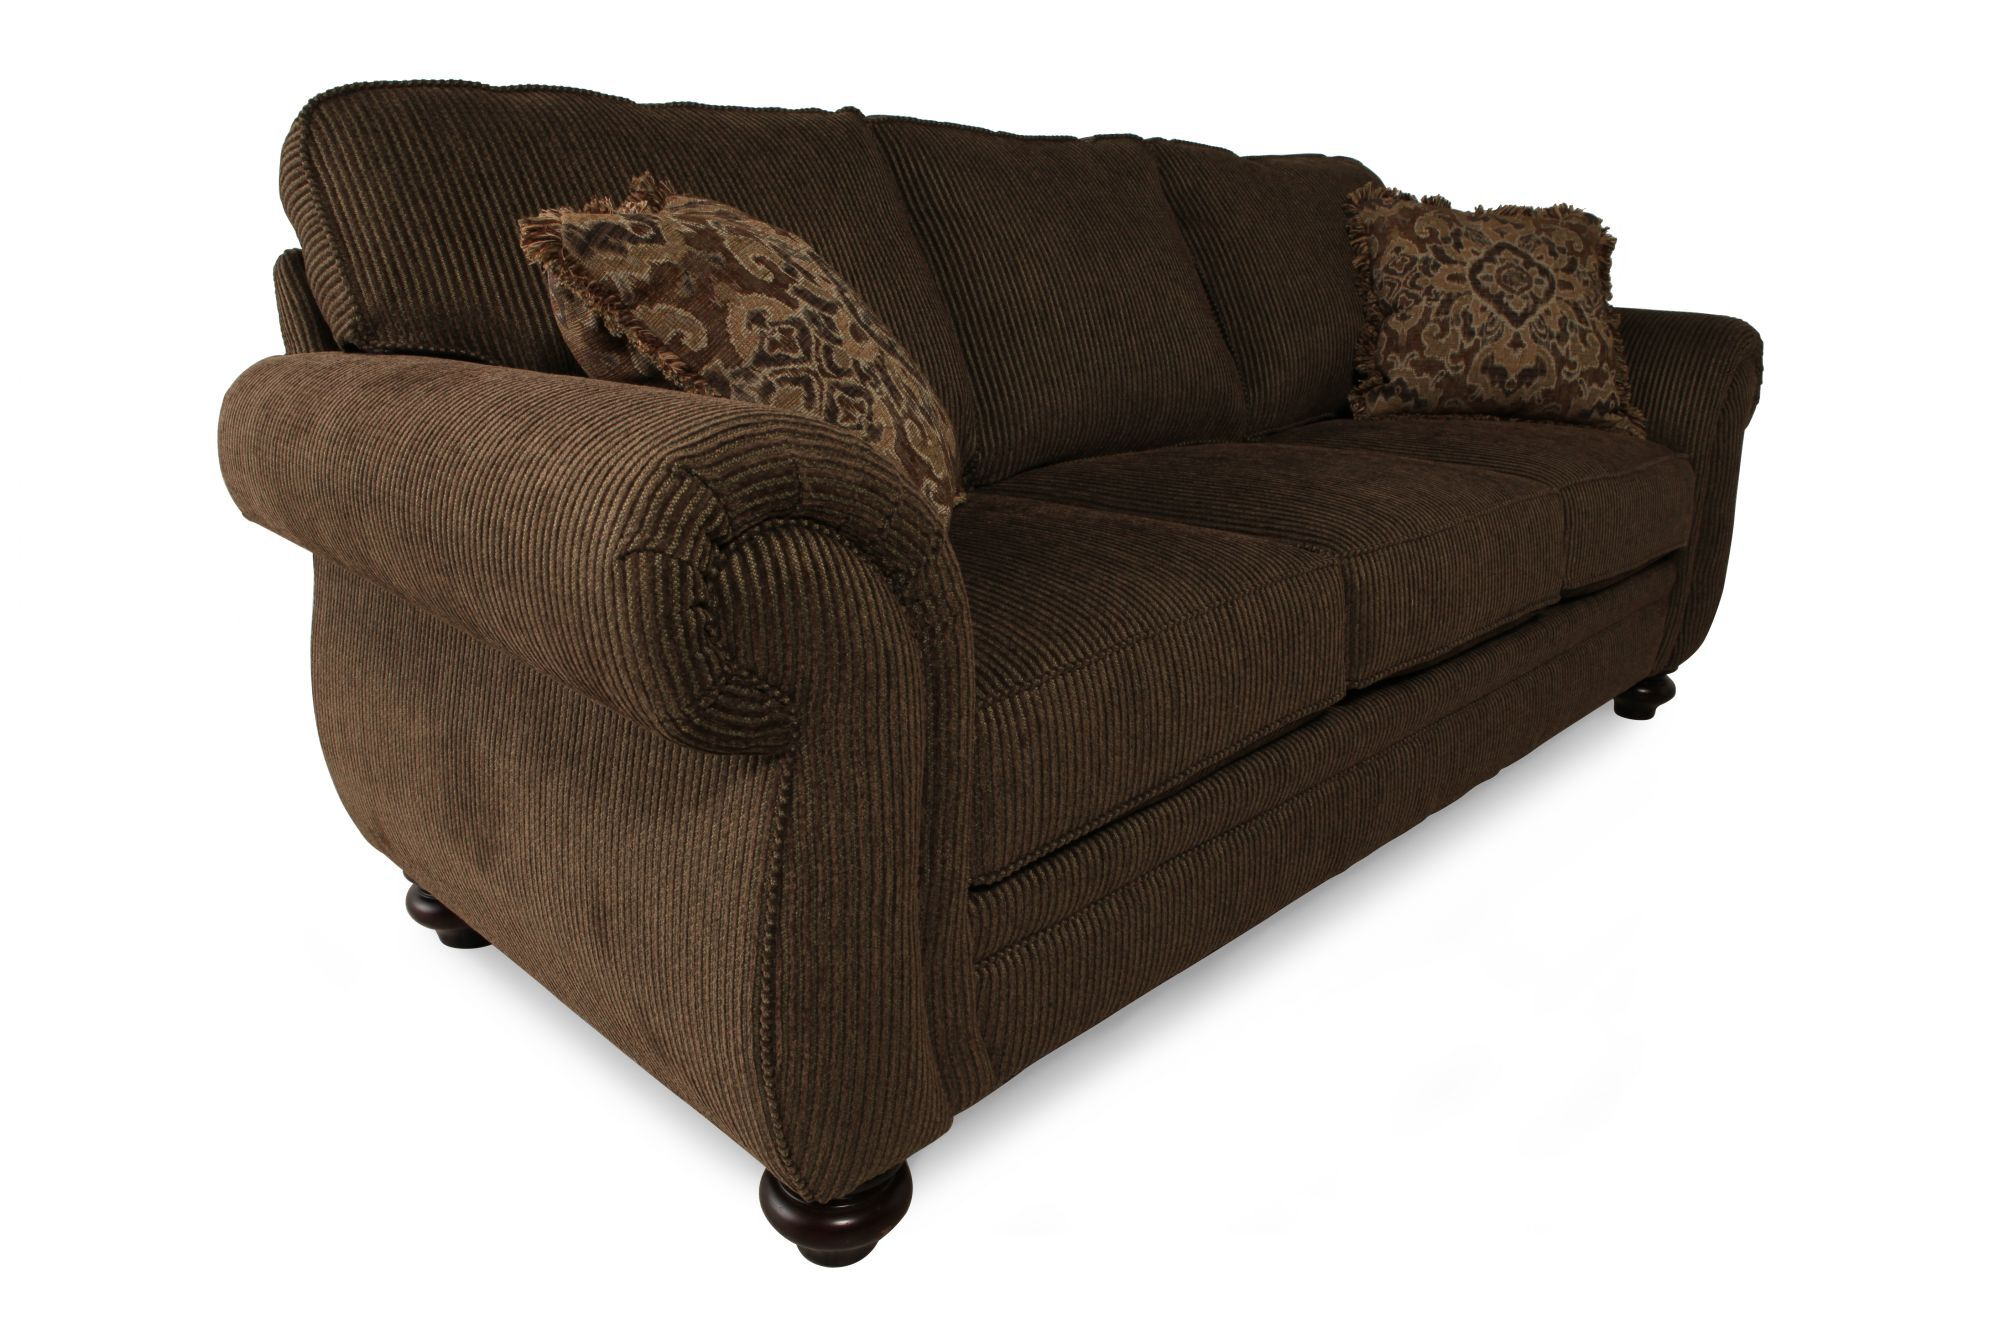 Broyhill Brown Corduroy Sofa Traditional Corduroy 89